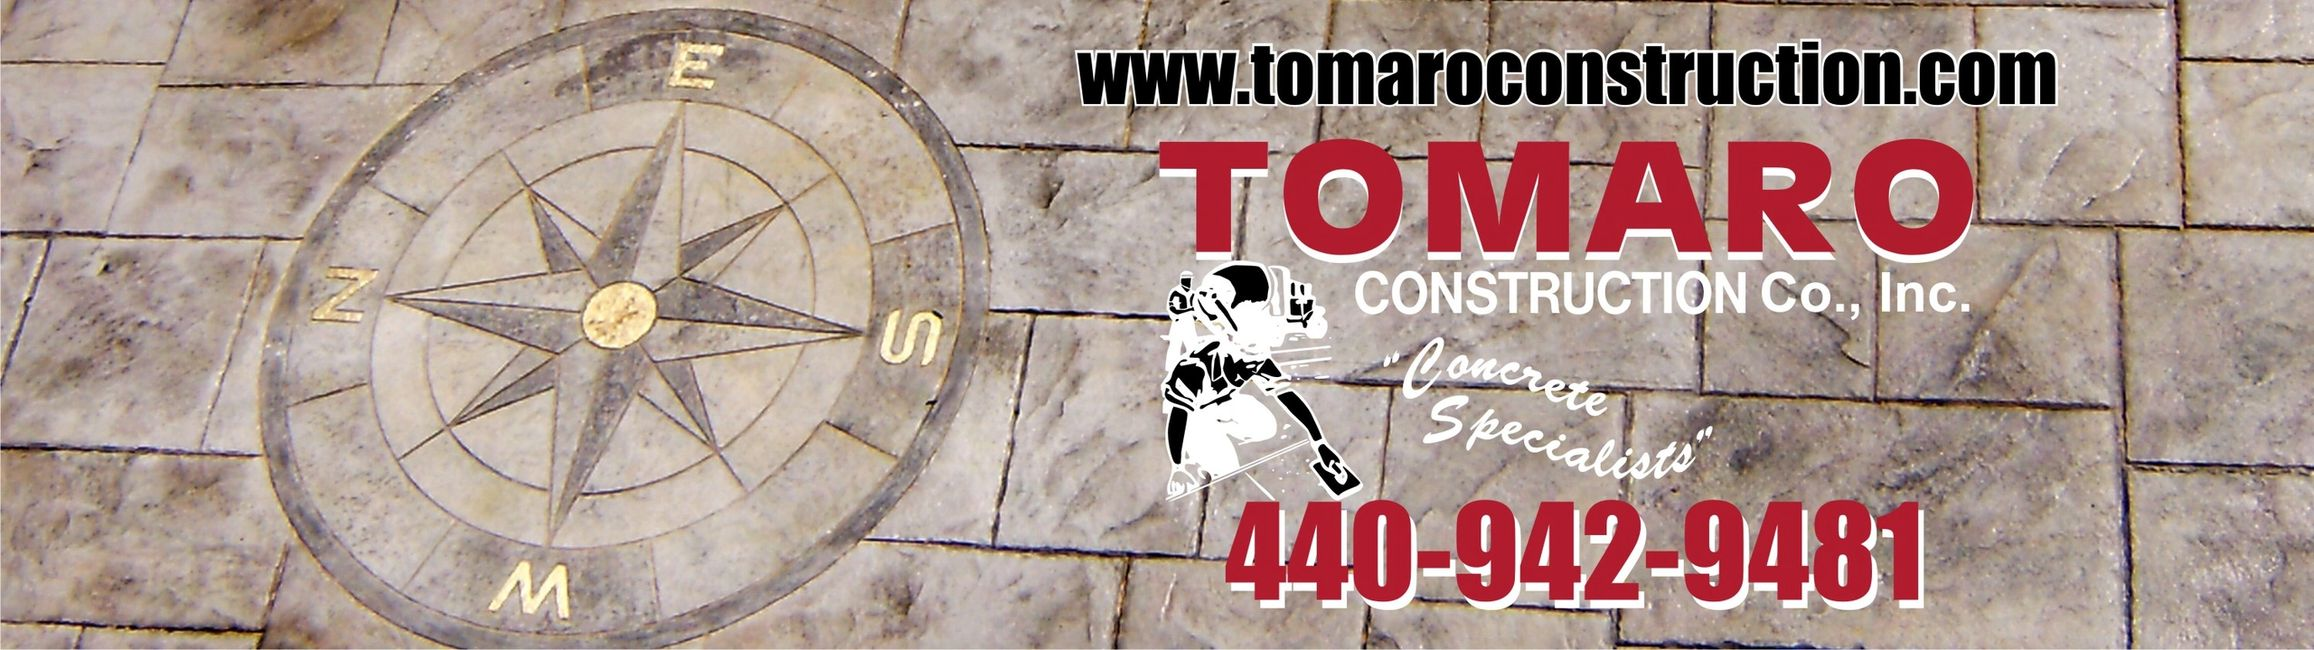 Stamped concrete, Decorative concrete, hand finished concrete, Patio, Outdoor Kitchens, Hardscapes